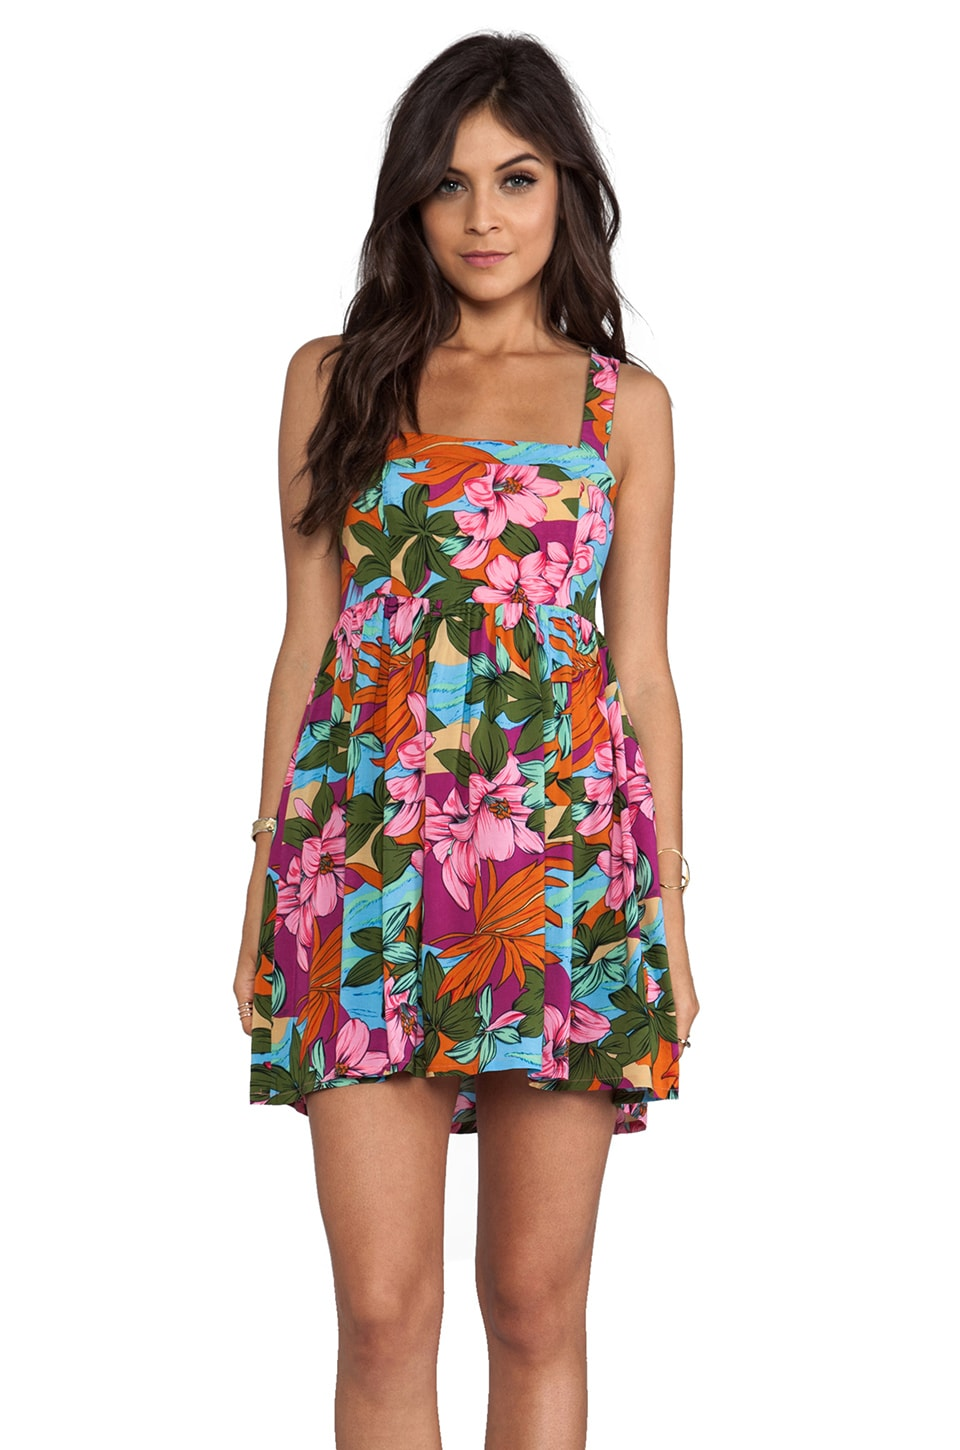 MINKPINK Copacabana Mini Dress in Multi